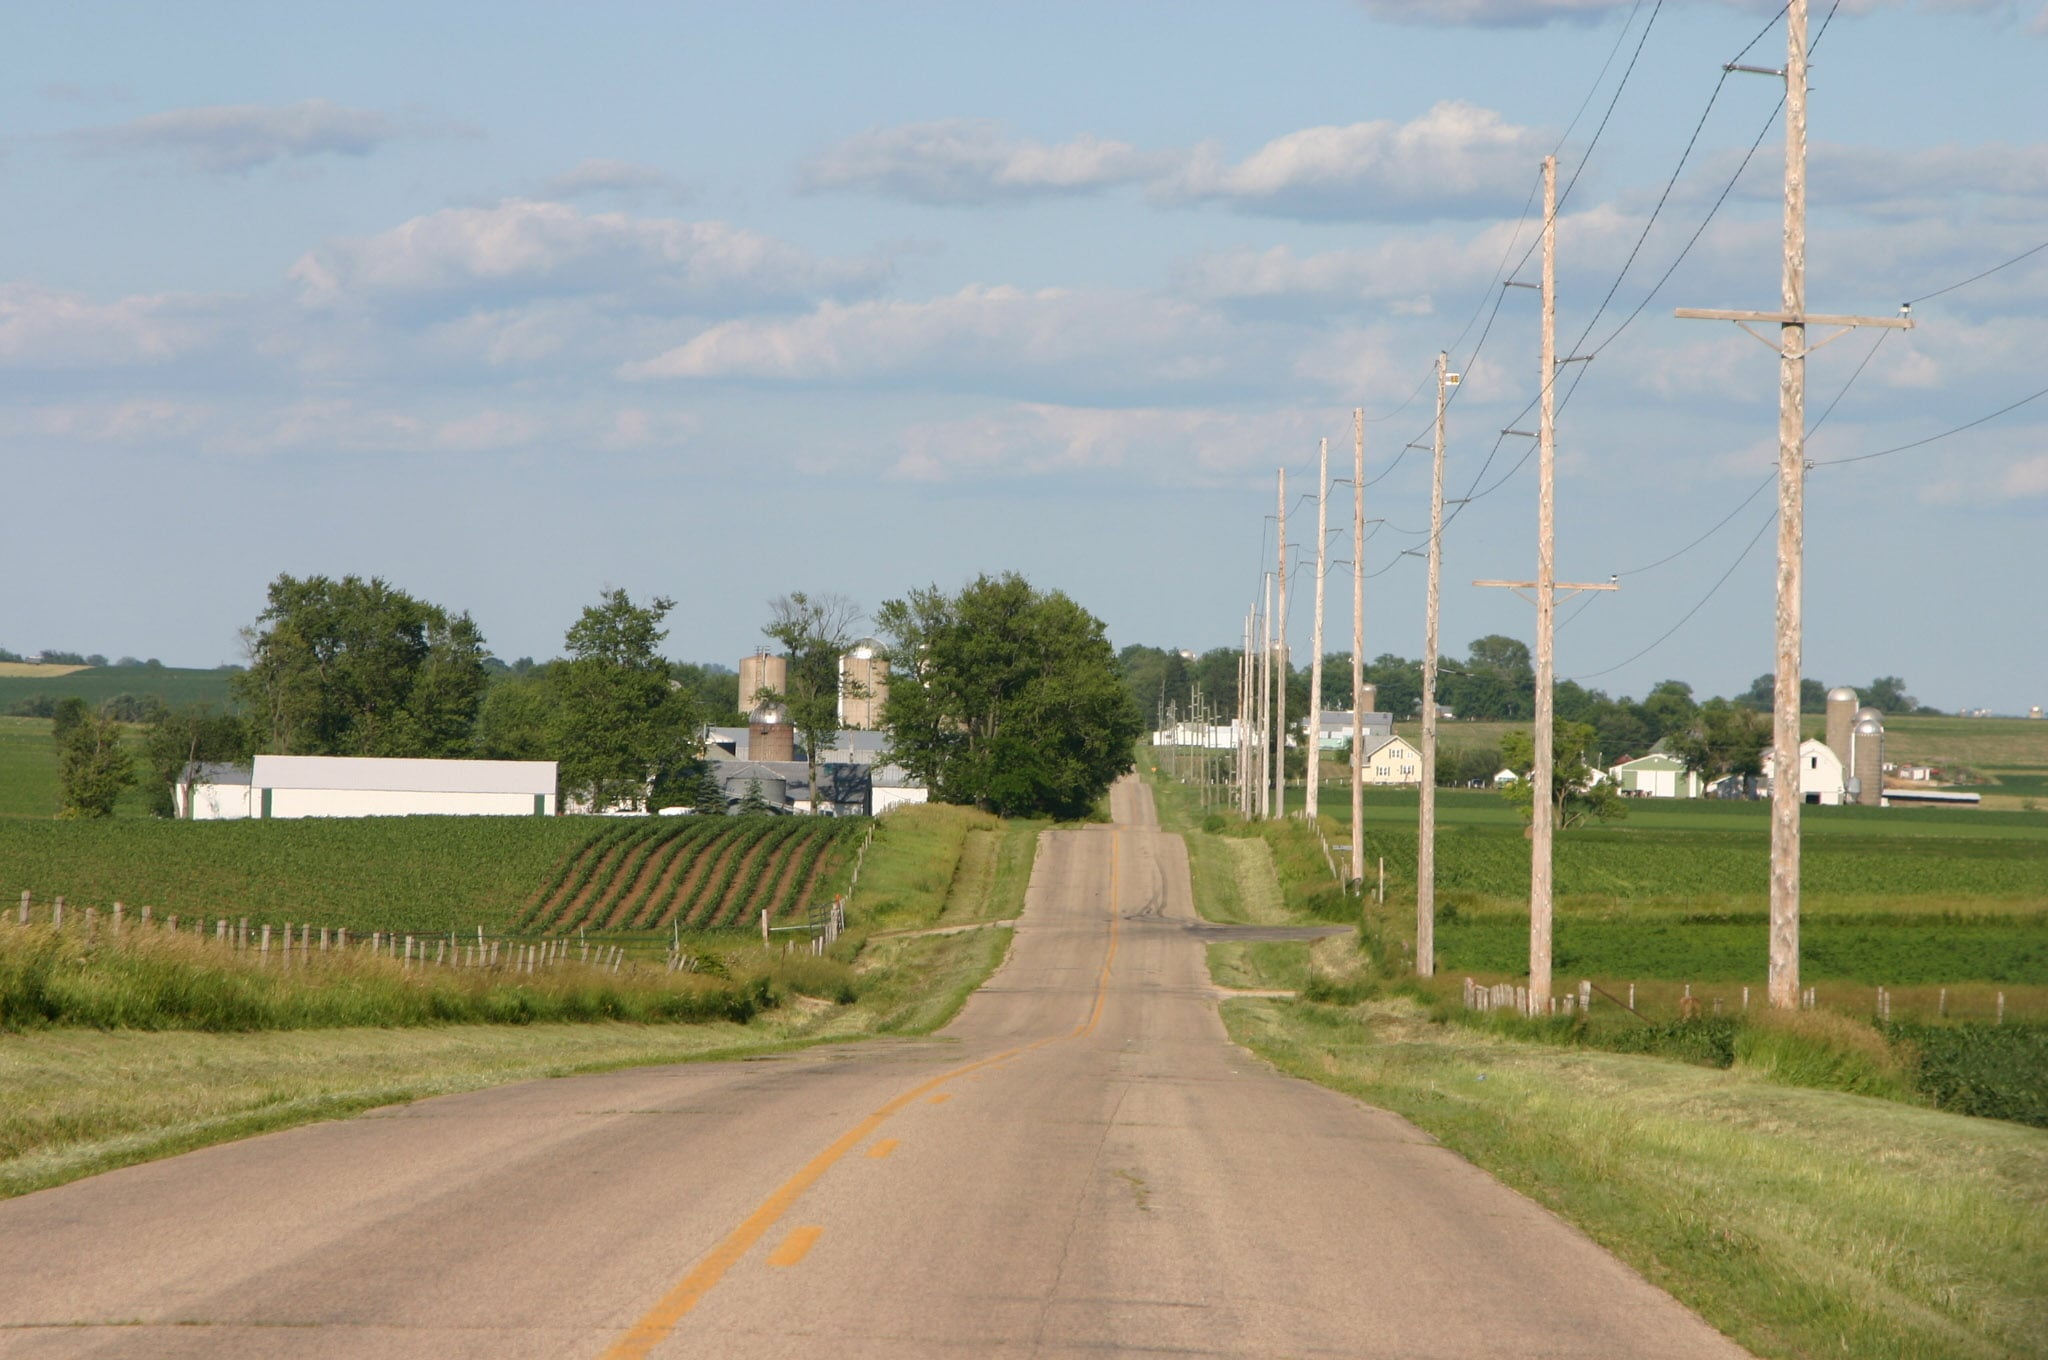 Iowa Co farms on road